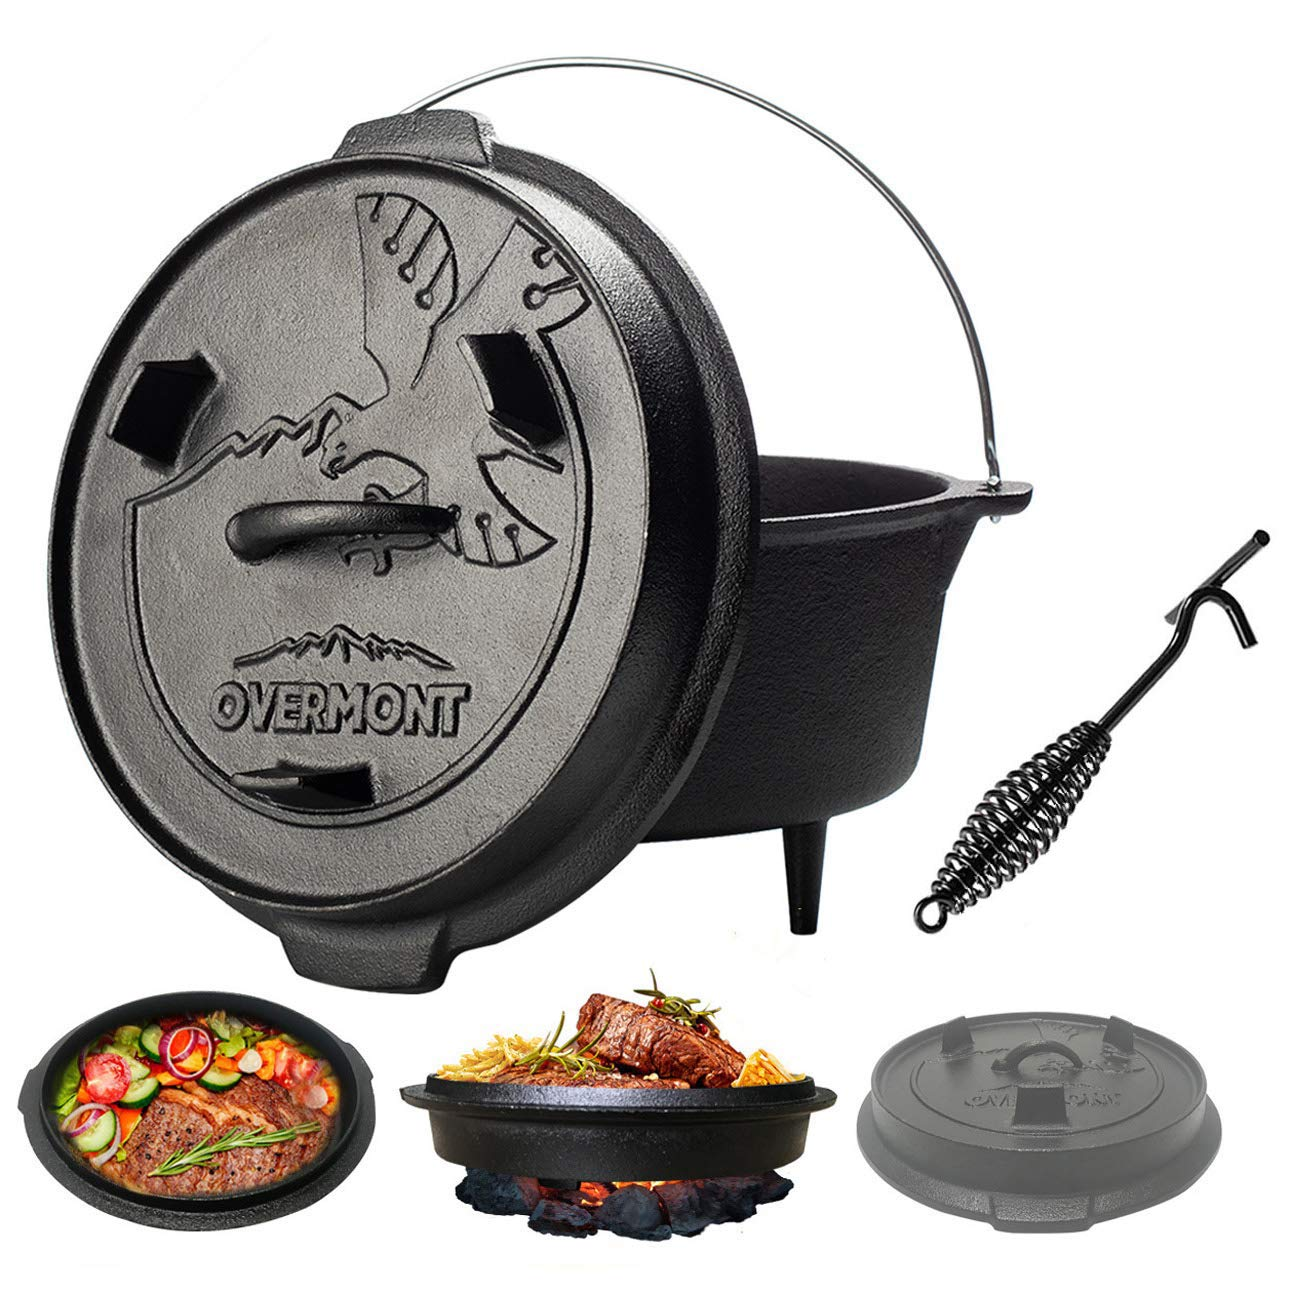 Overmont 6 Quart Camp Dutch Oven All-round Cast Iron Casserole Pot Dual Function Lid Griddle Pre Seasoned with Lid Lifter Handle for Camping Cooking BBQ Baking by Overmont